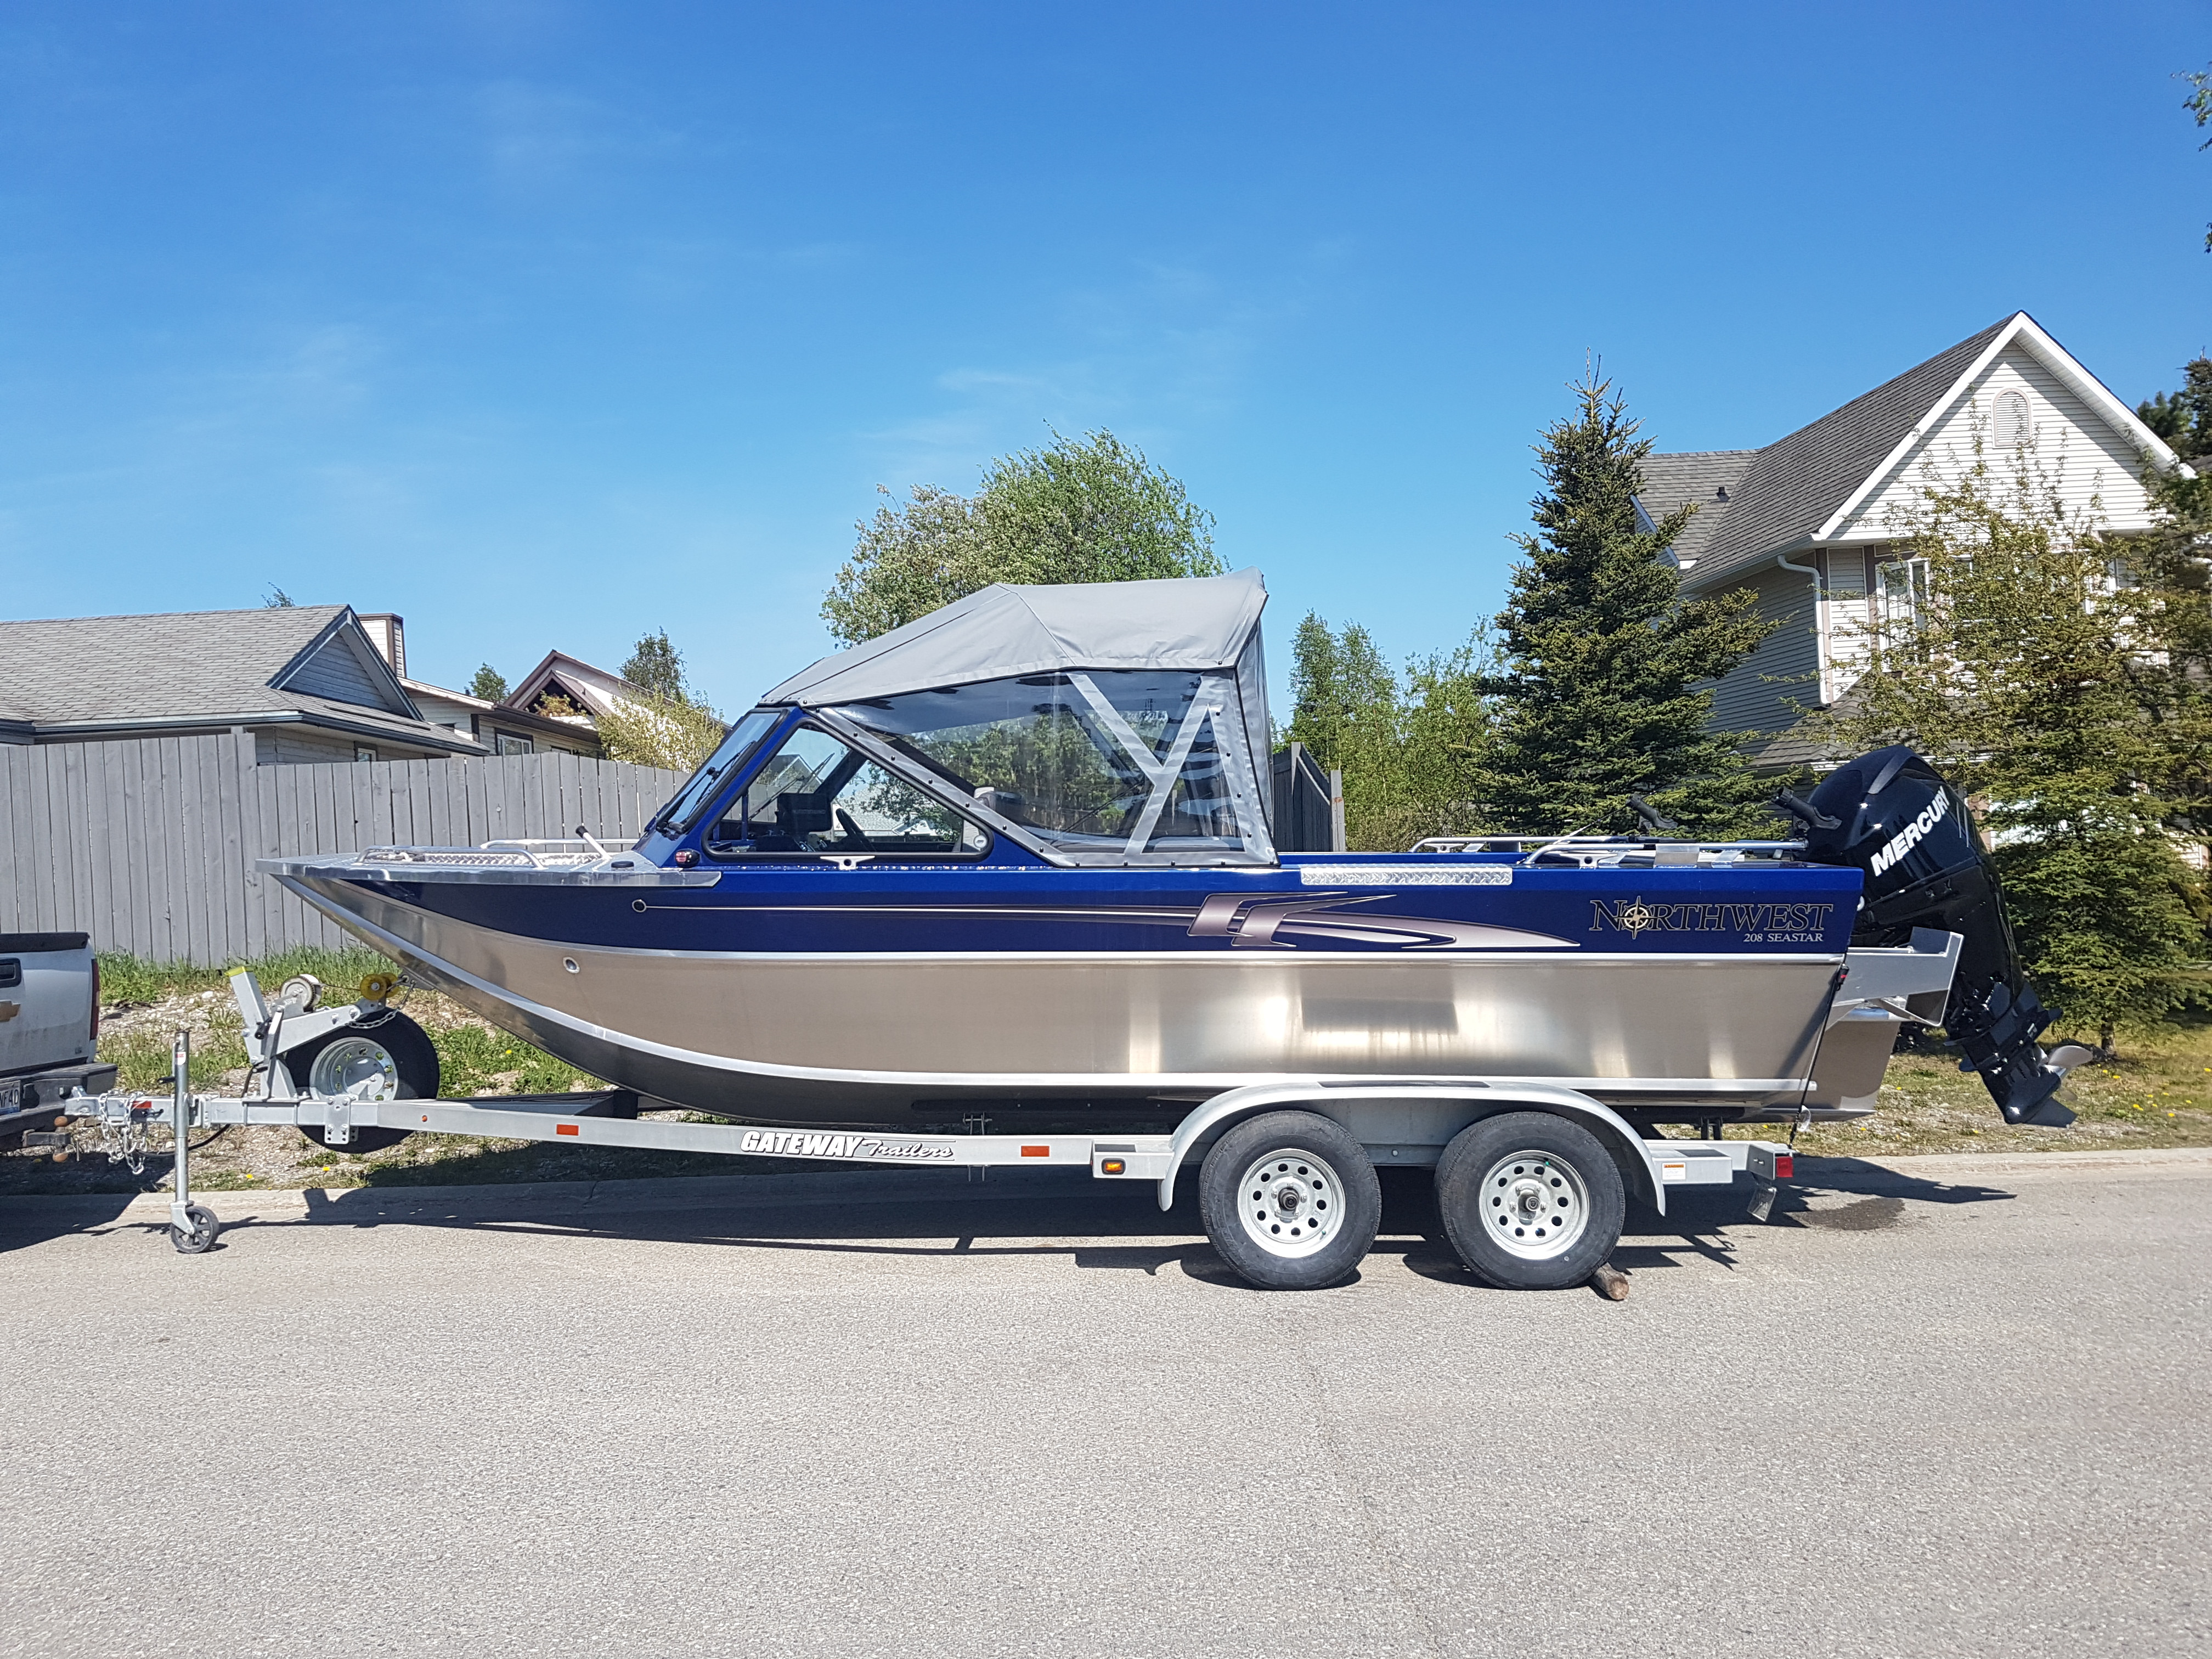 Boat for hire $125 per hour, min 4 hrs